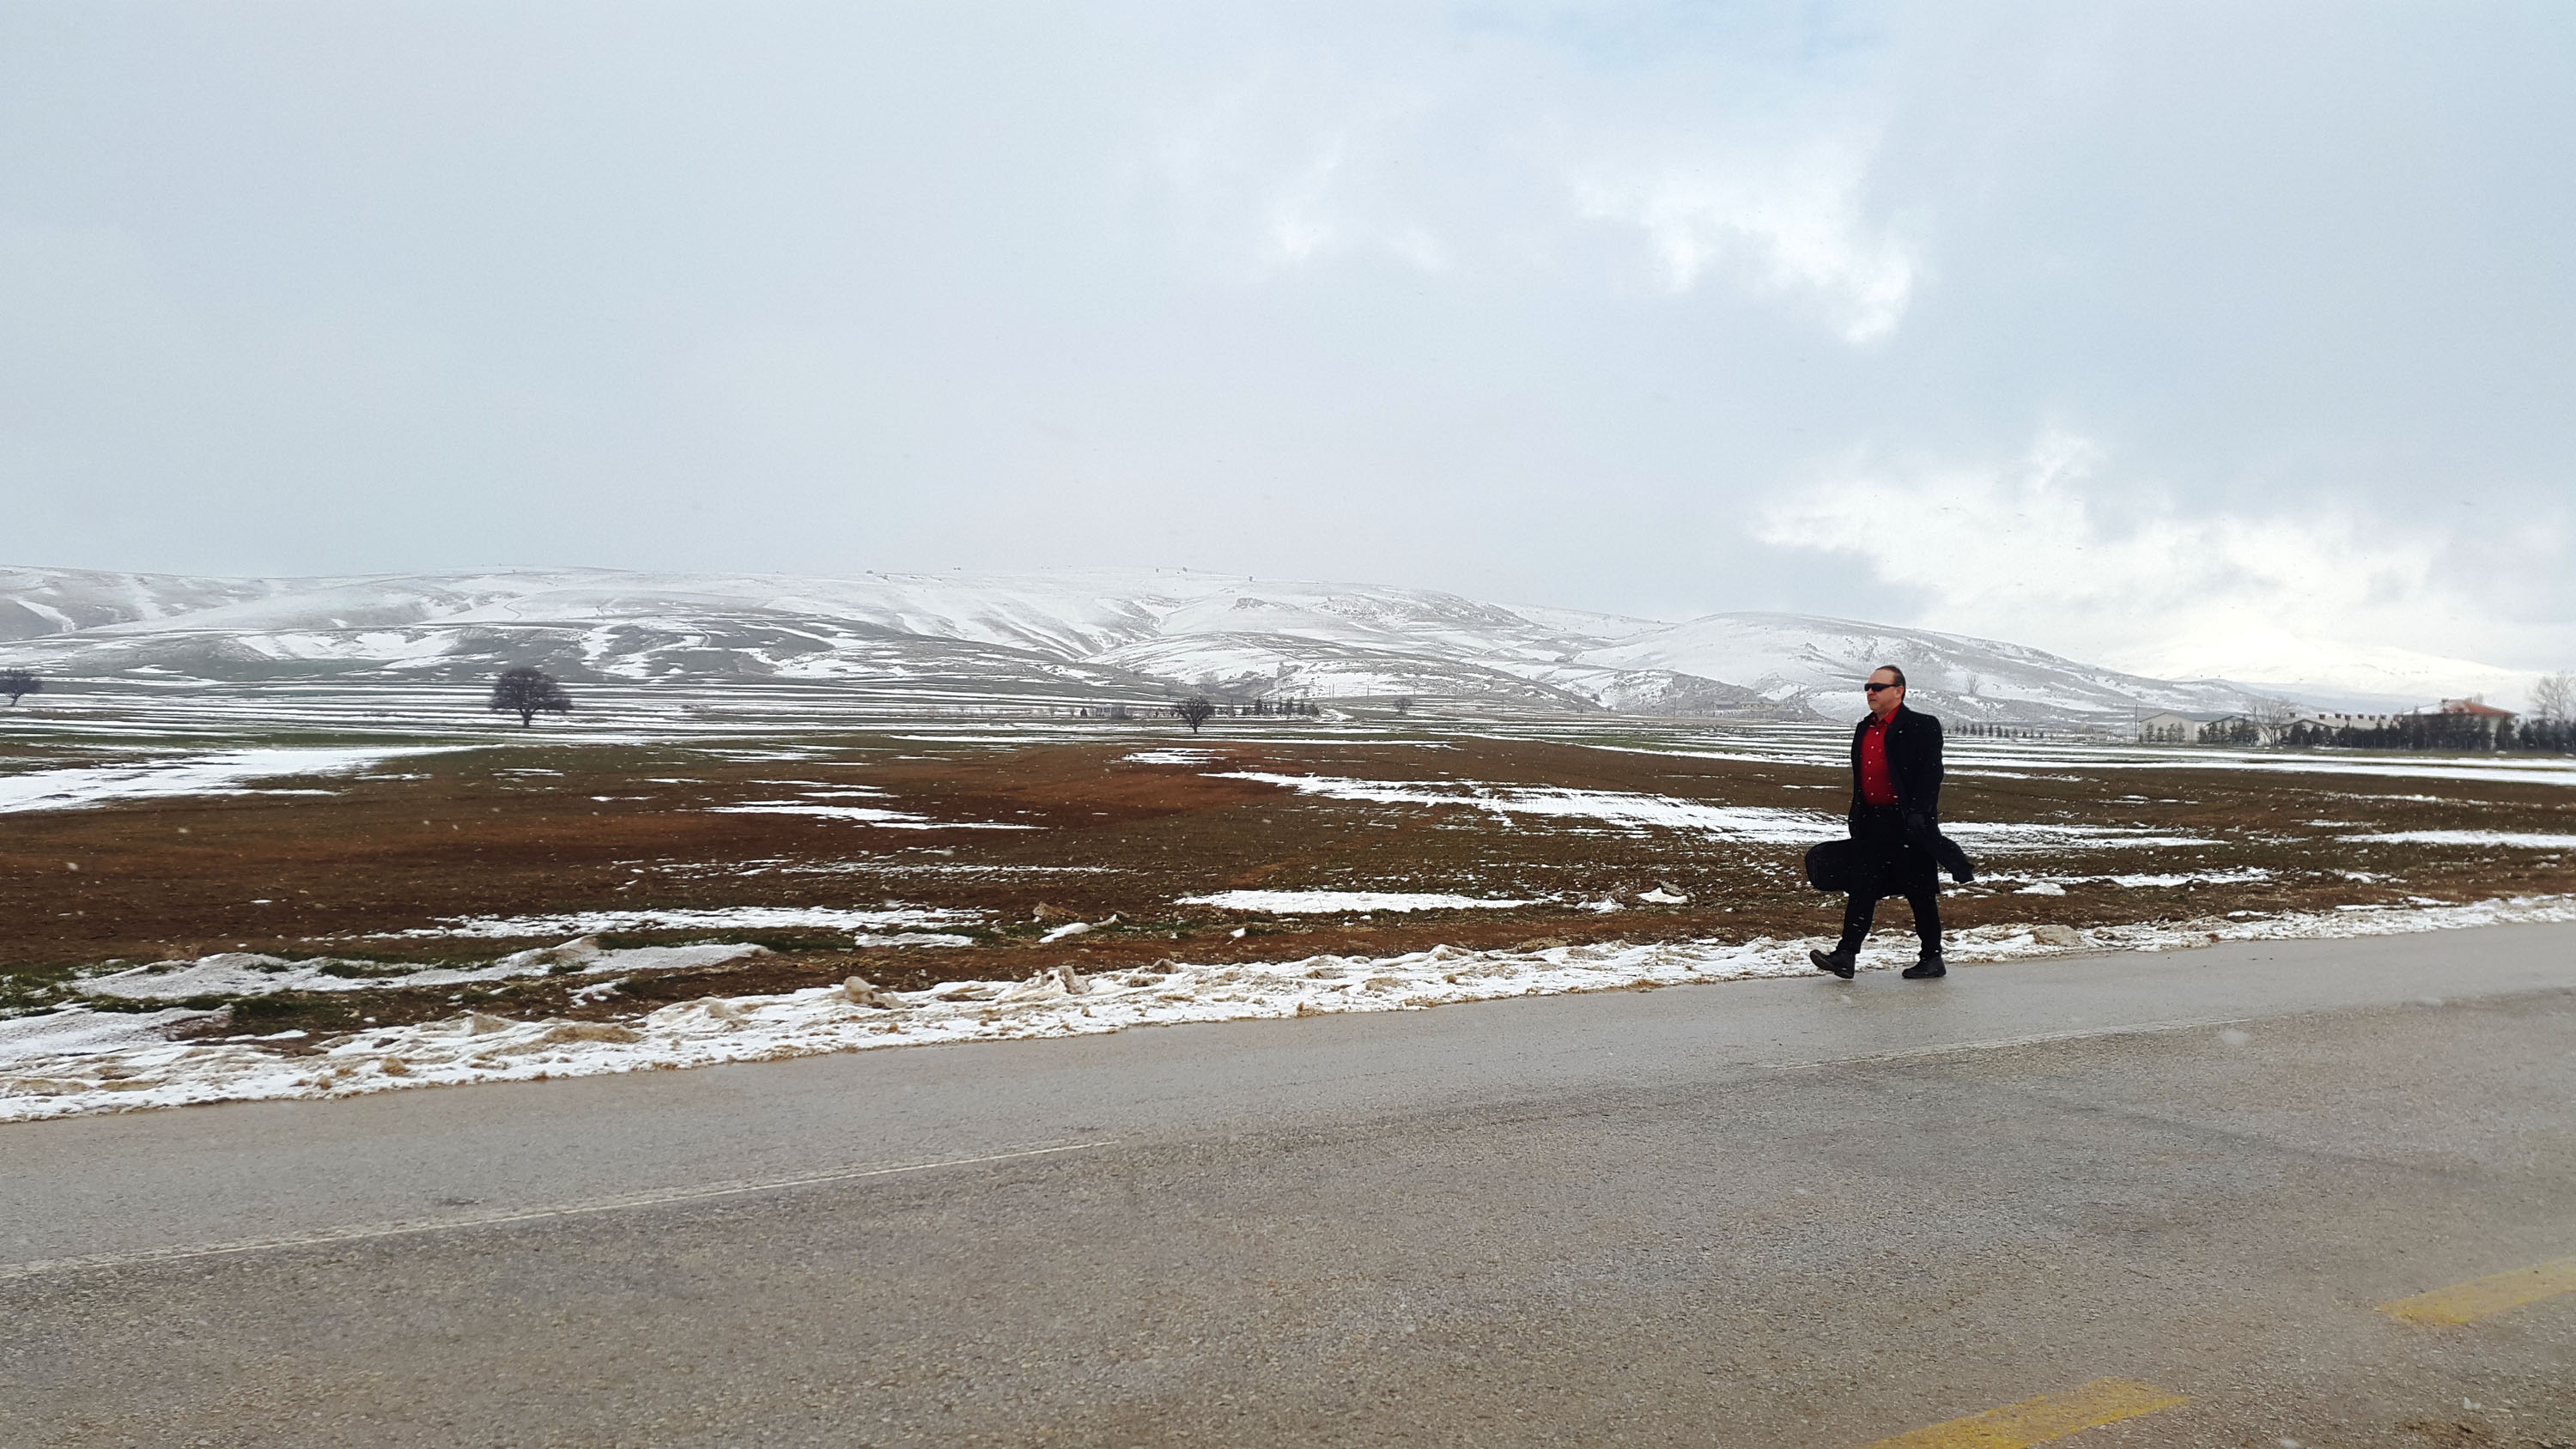 Village road between Ankara-Kırıkkale